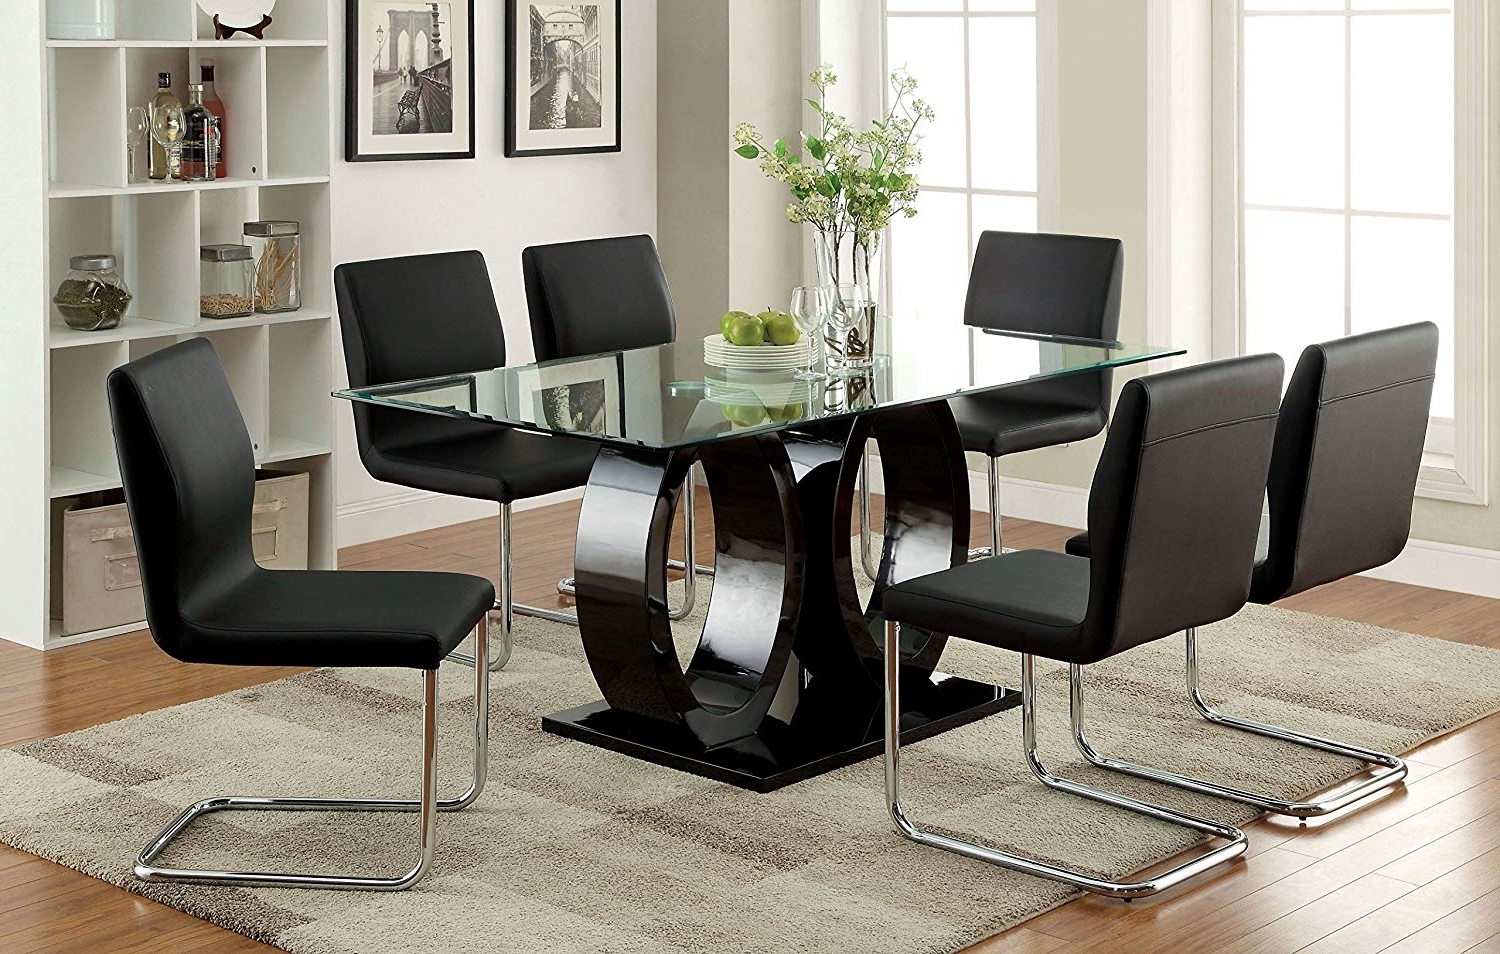 Popular Modern Dining Room Sets In Amazon – Furniture Of America Quezon 7 Piece Glass Top Double (View 16 of 25)